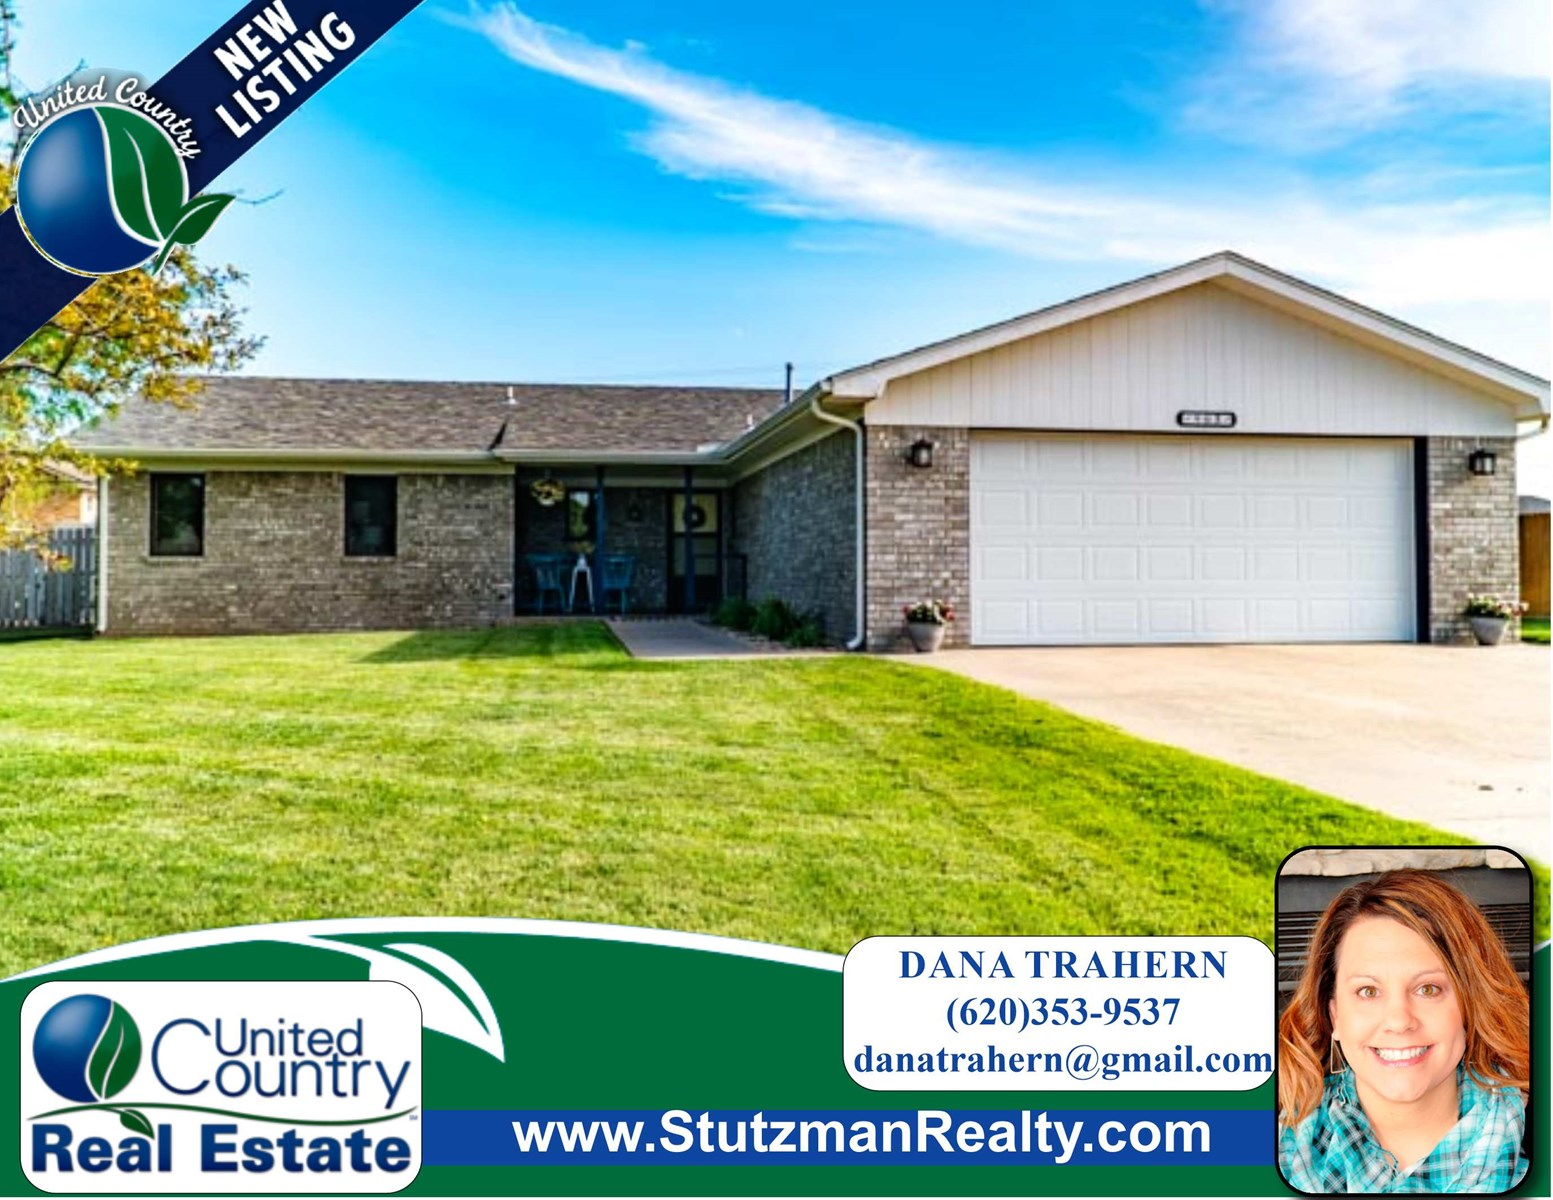 CHARMING HOME FOR SALE IN ULYSSES, KS